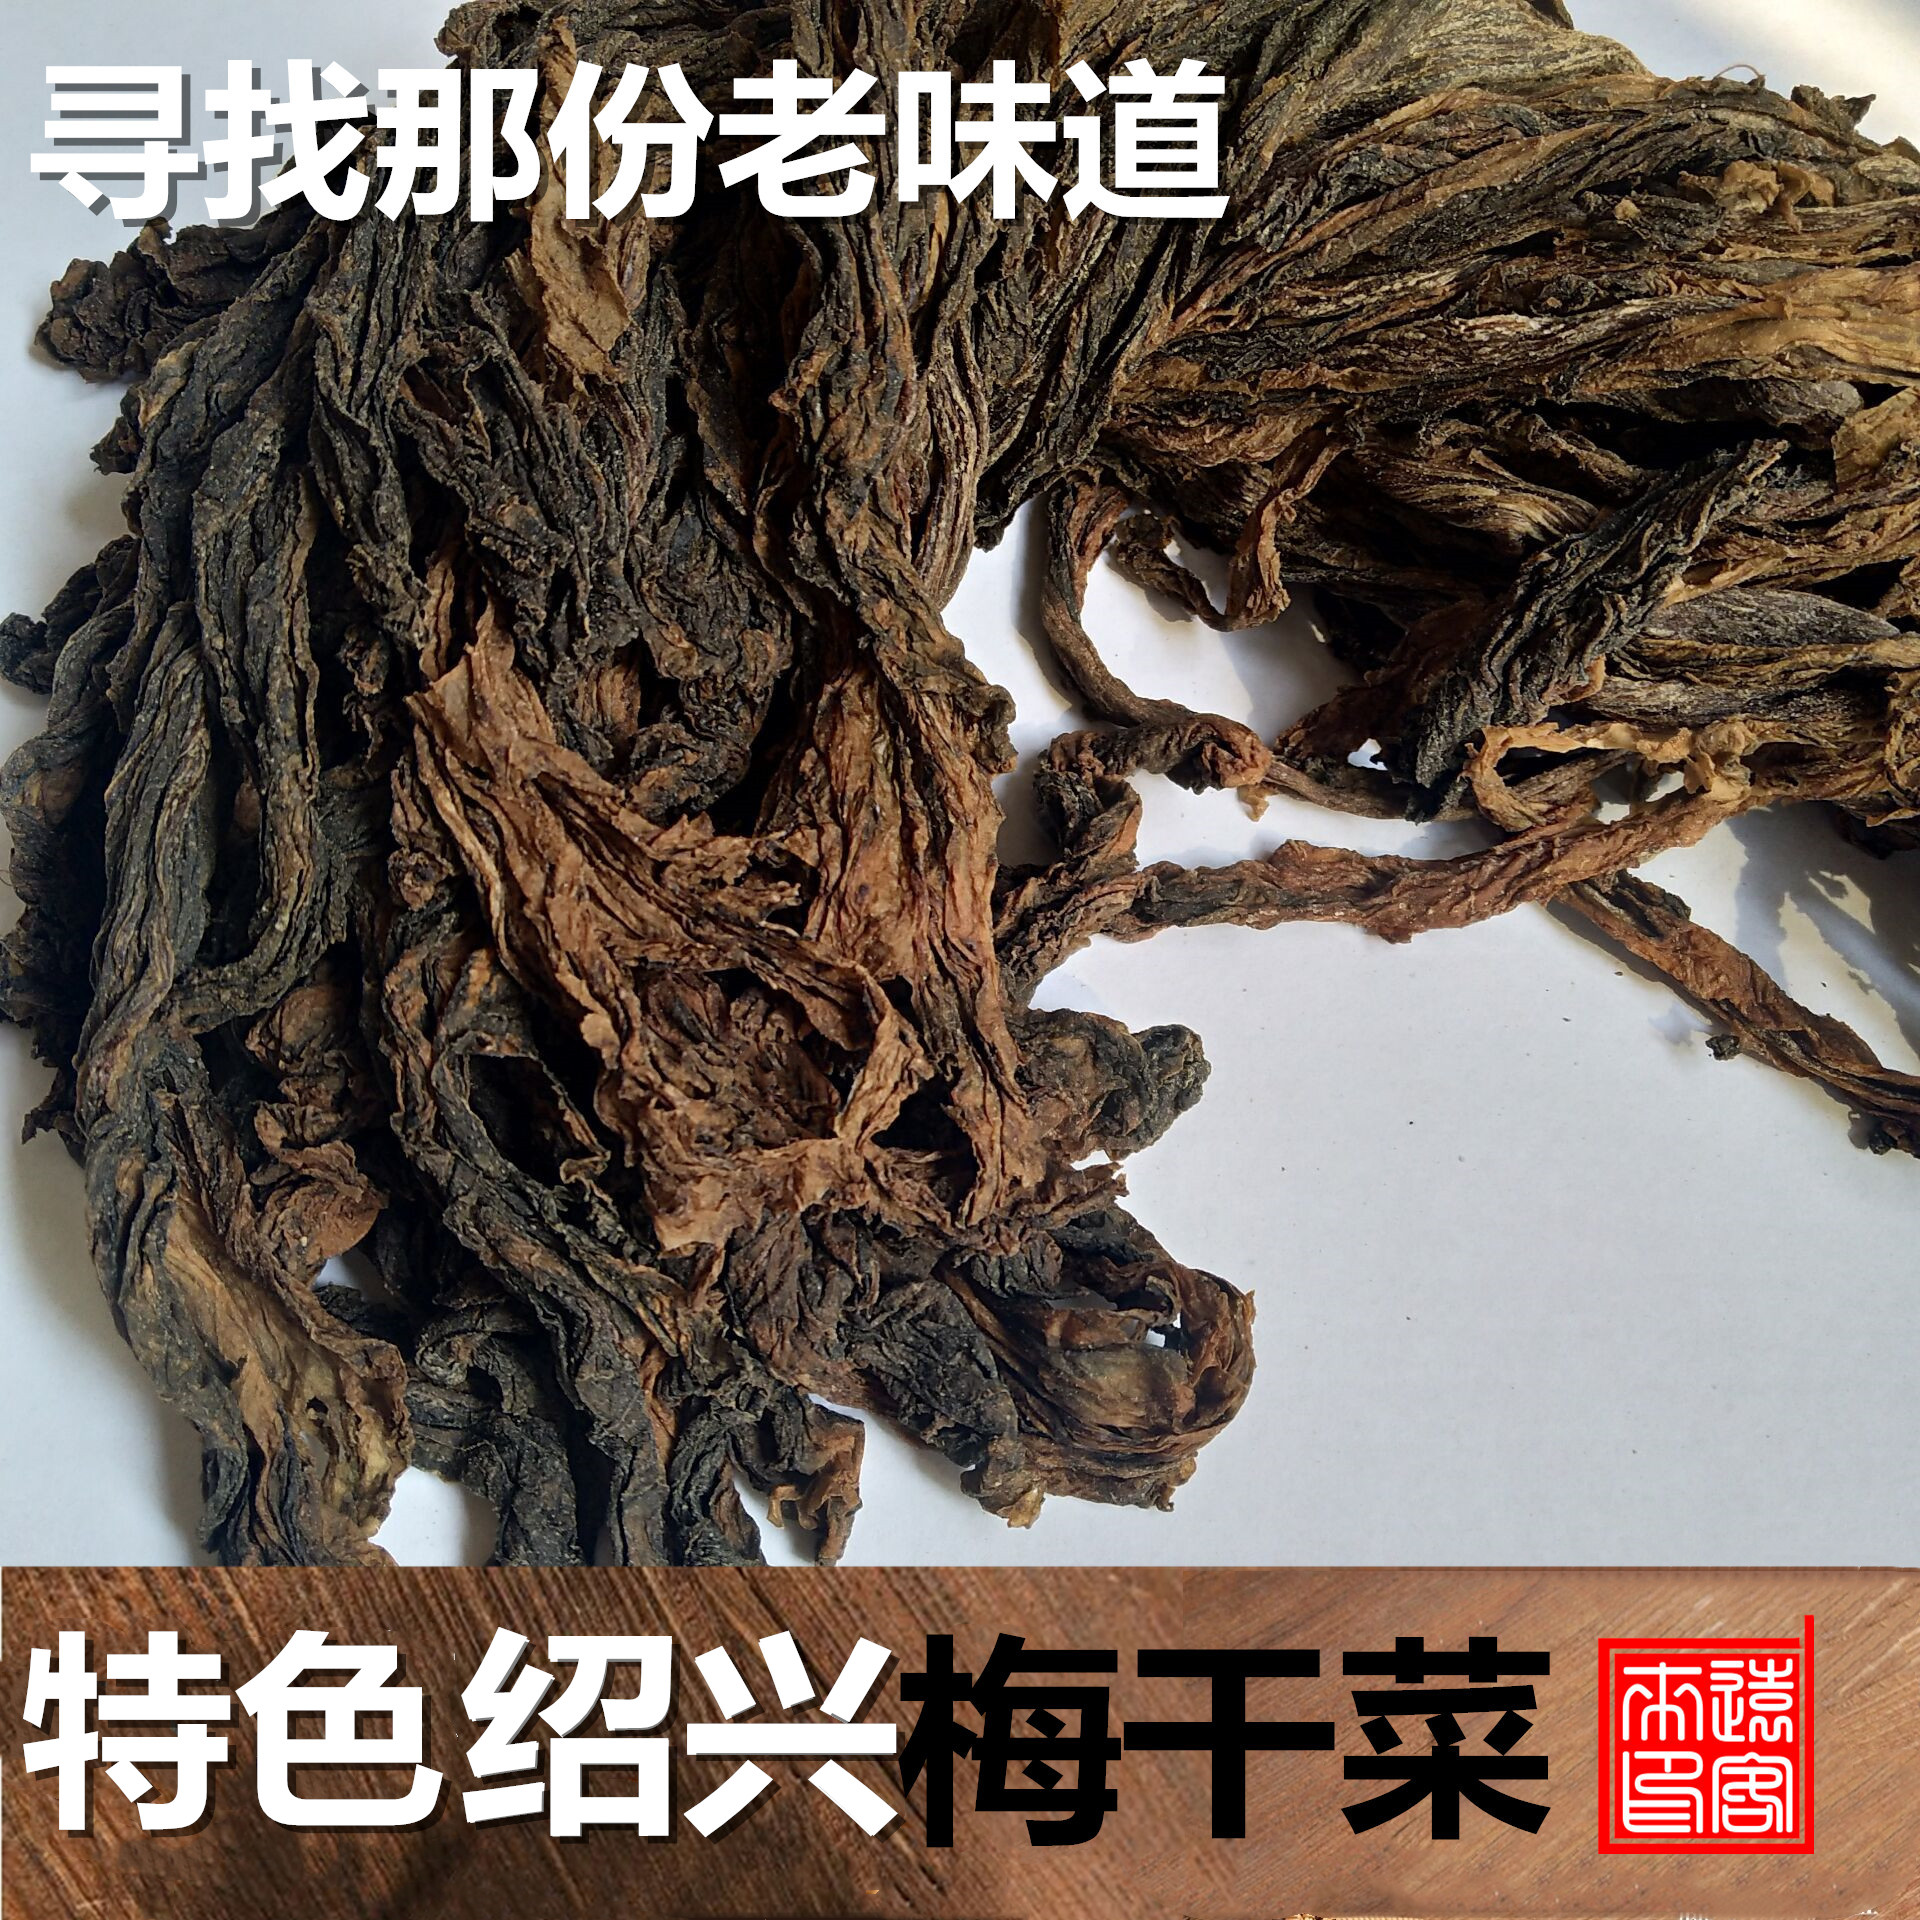 Yuanke Meicai dry goods free of washing plum dried vegetables farmhouse authentic Wugan vegetables Shaoxing specialty dried mustard 500g